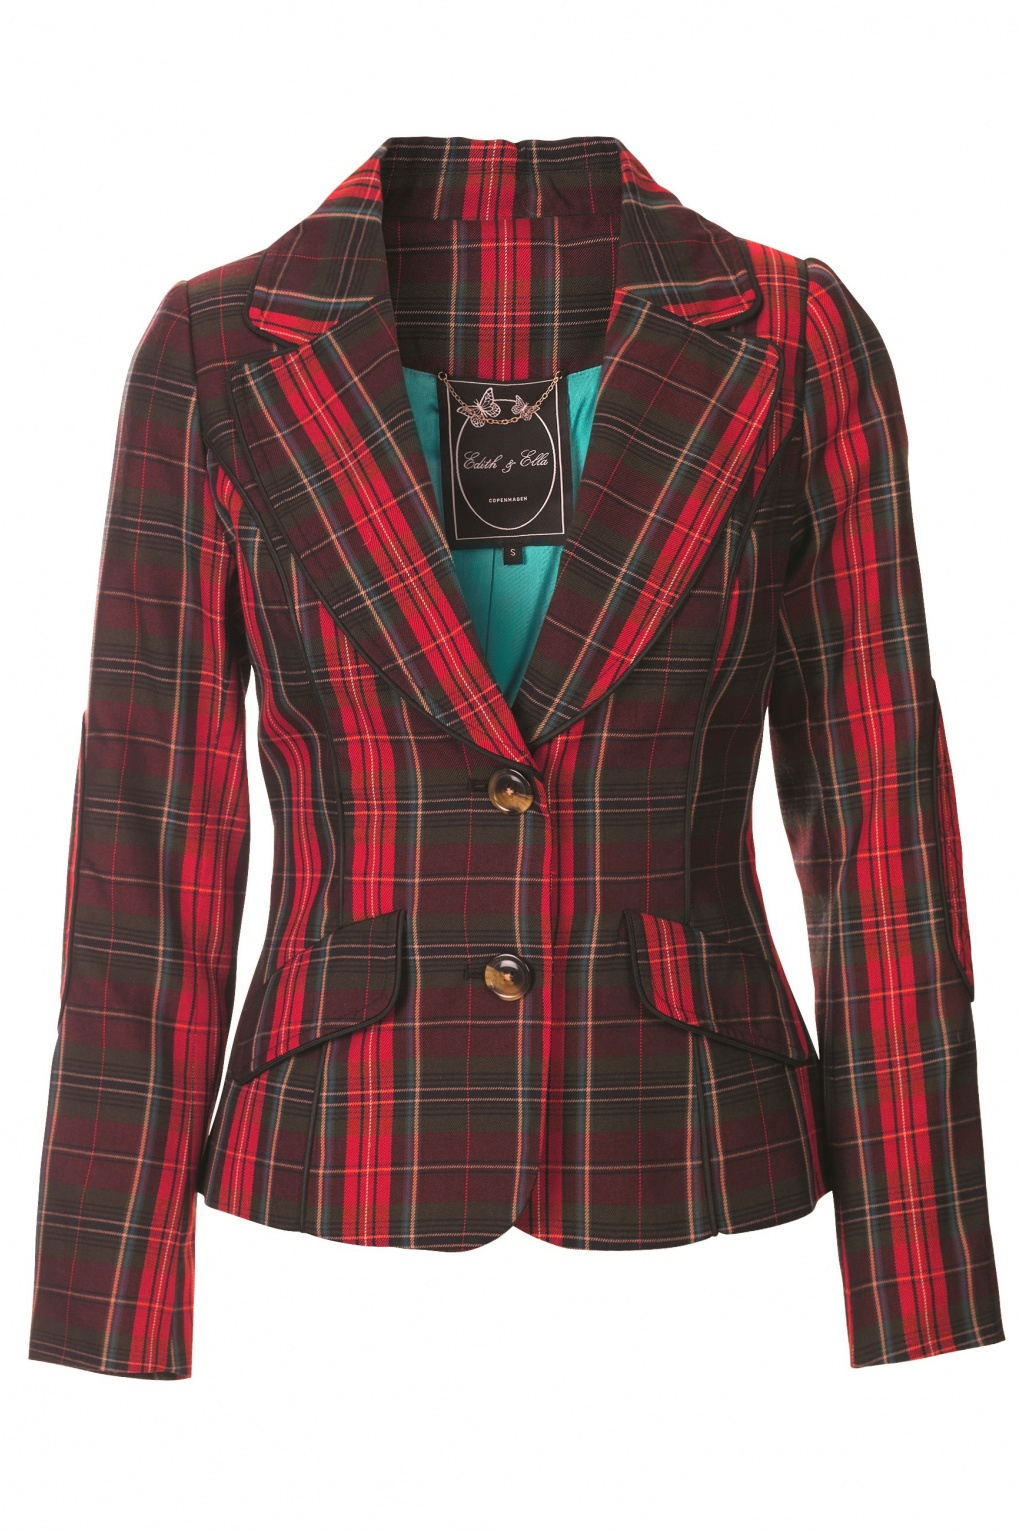 tartan blazer in red and green